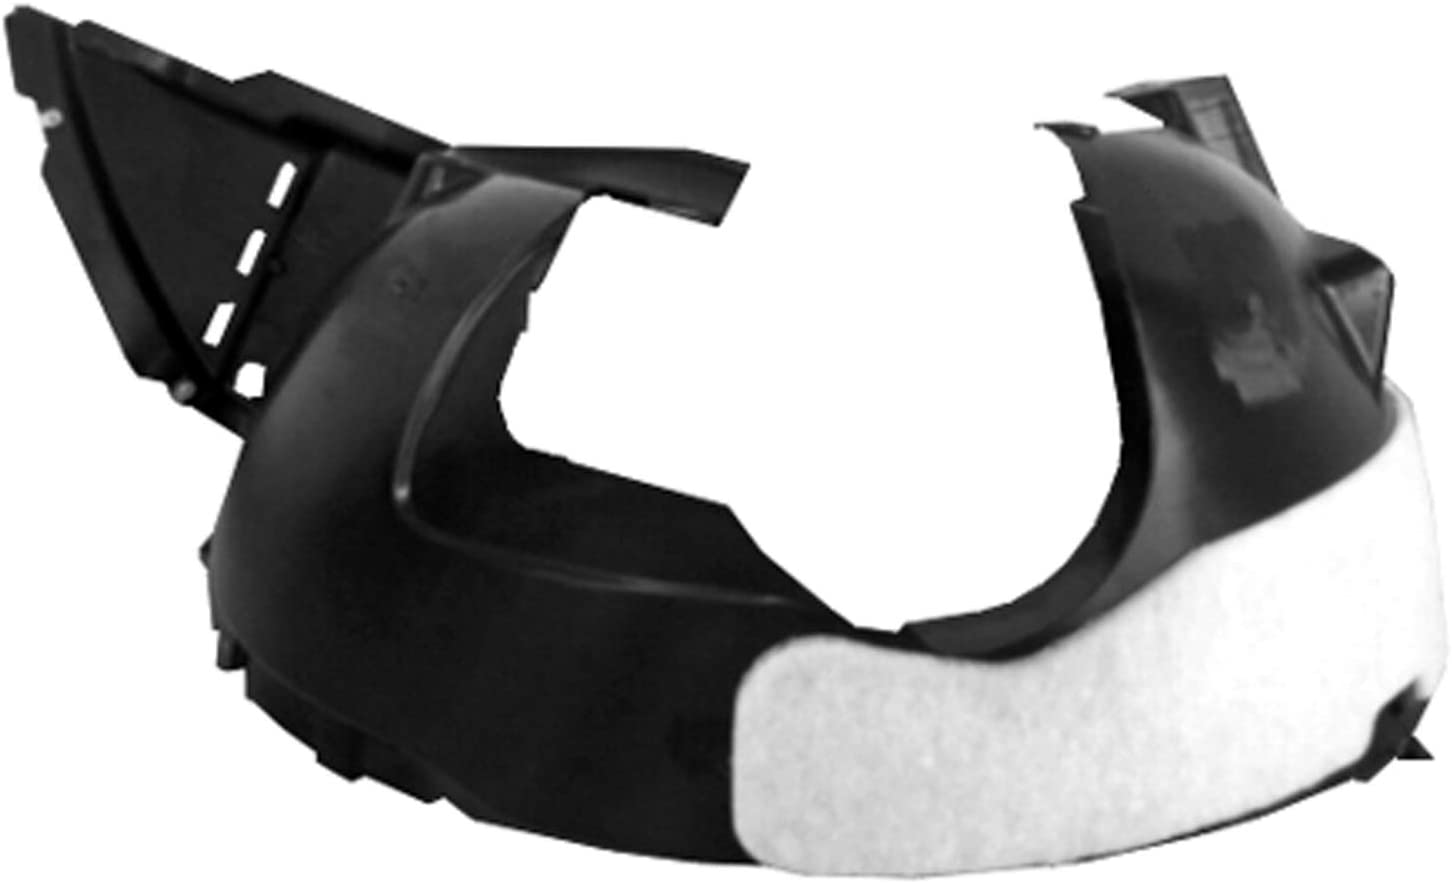 2013-2016 Buick Encore Driver Side Front Fender Liner; Injection Molded With Insulation Foam; Made Of Pp Plastic Partslink GM1248266